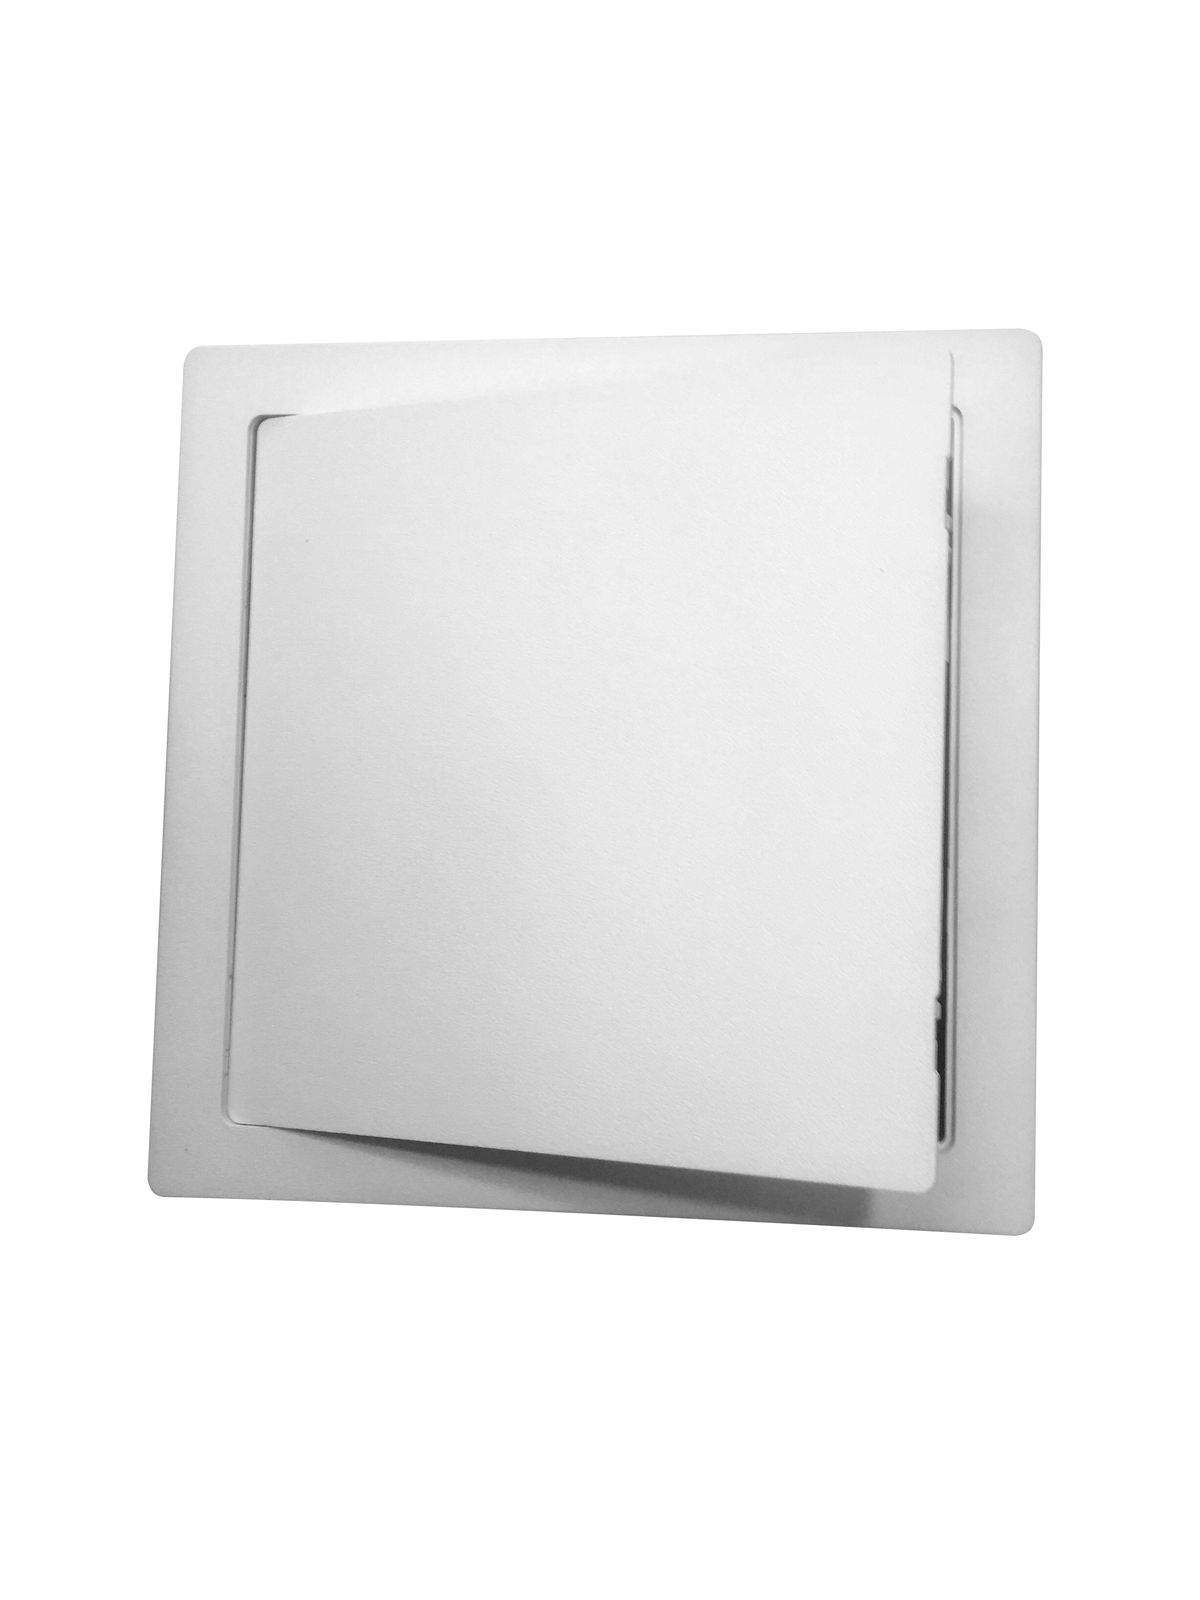 White Plastic Access Panel Inspection Hatch Revision Door 300mm x 300mm (12